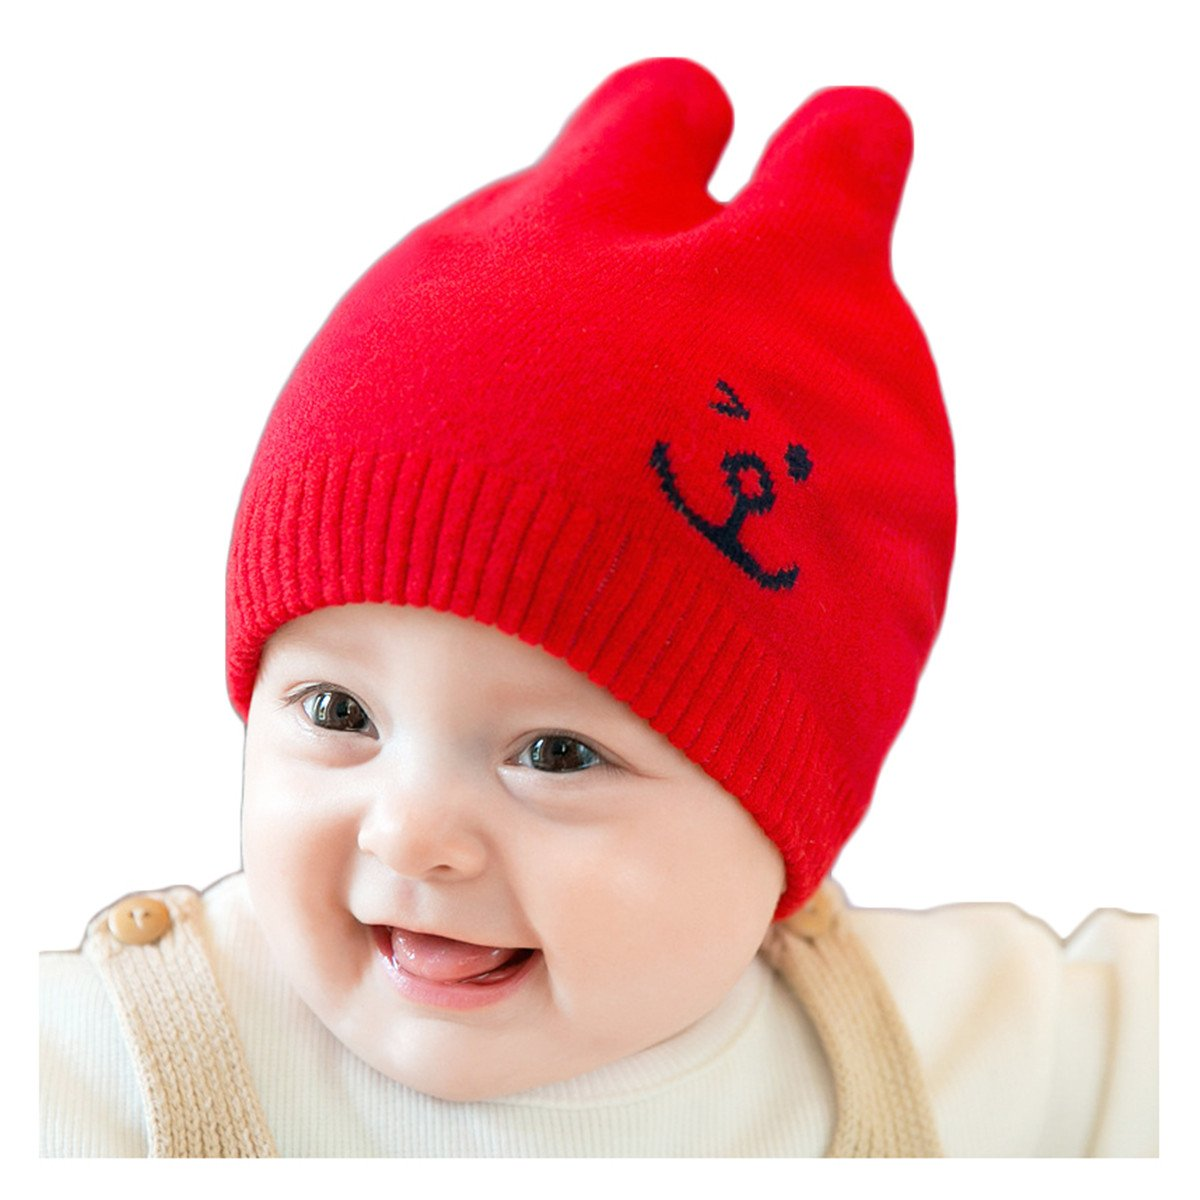 cf93d71202894 Amazon.com  Winter New Korean Style Unisex Beanie Cute Rabbit Ears Warm Cap  Hat for Baby Kids  Clothing